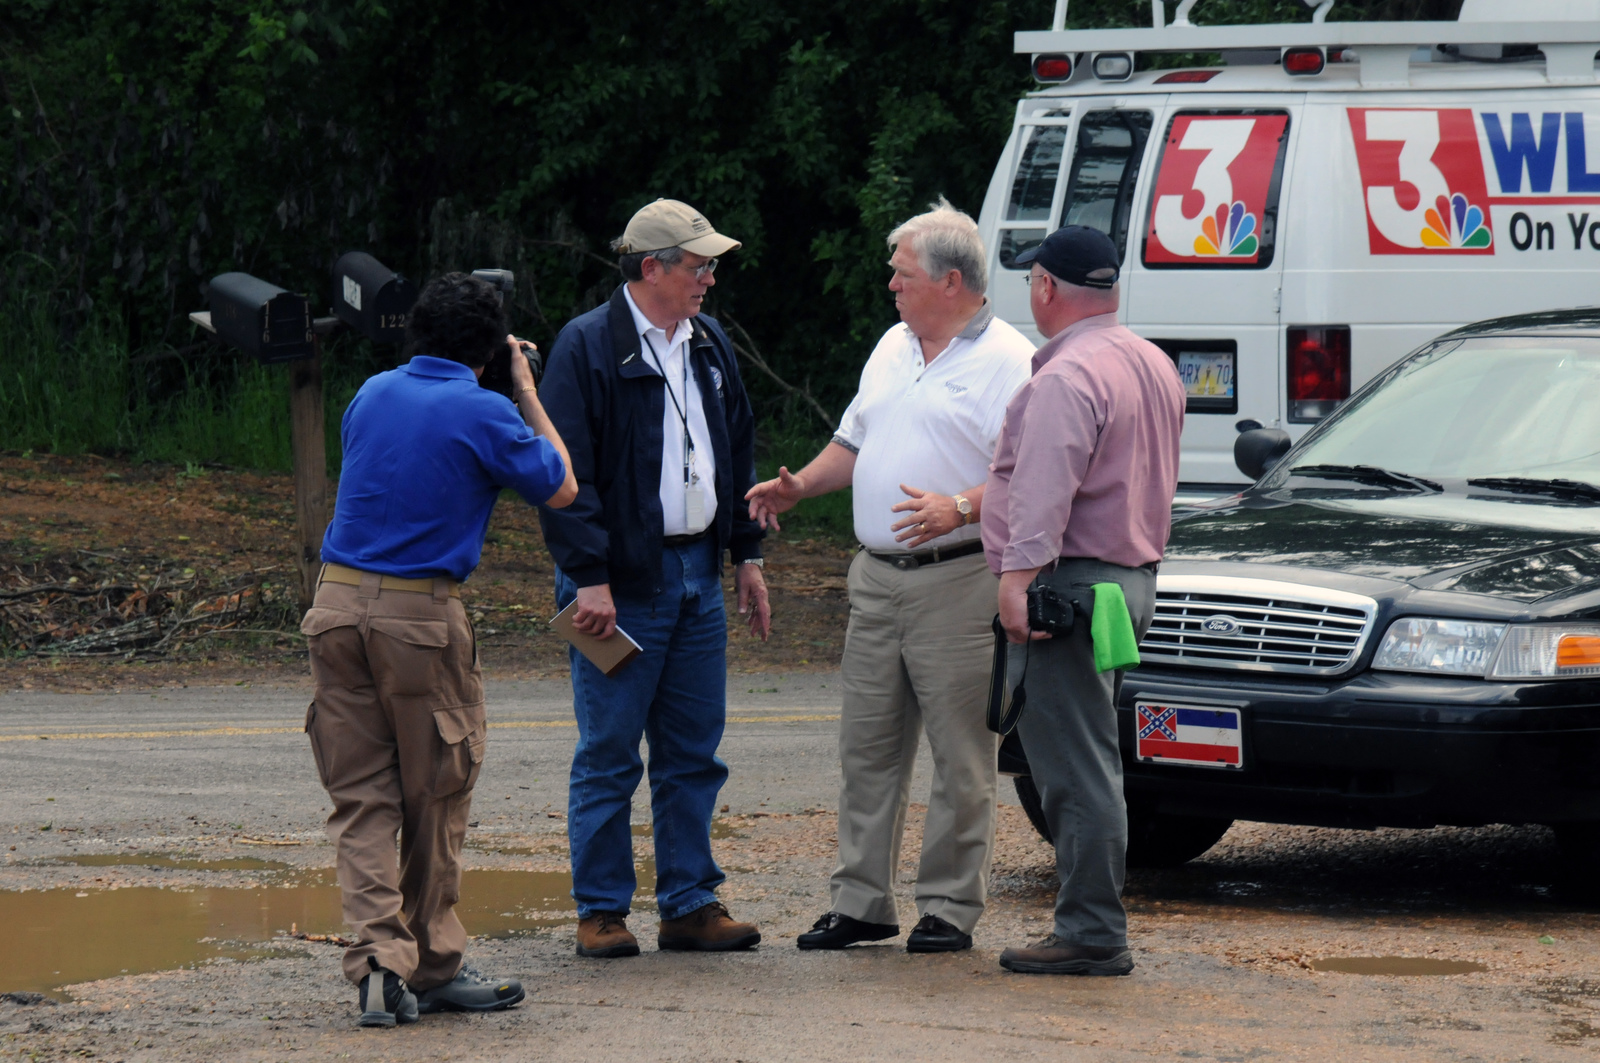 Severe Storm ^ Tornado - Lexington, Miss. , May 1, 2010 -- At the Ebenezer Community Volunteer Fire Station FEMA Federal Coordinating Officer Michael Bolch speaks with Governor Haley Barbour and his press secretary Dan Turner while being photographed by FEMA photographer David Fine. FEMA is here in response to the deadly April 24 tornado.  George Armstrong/FEMA